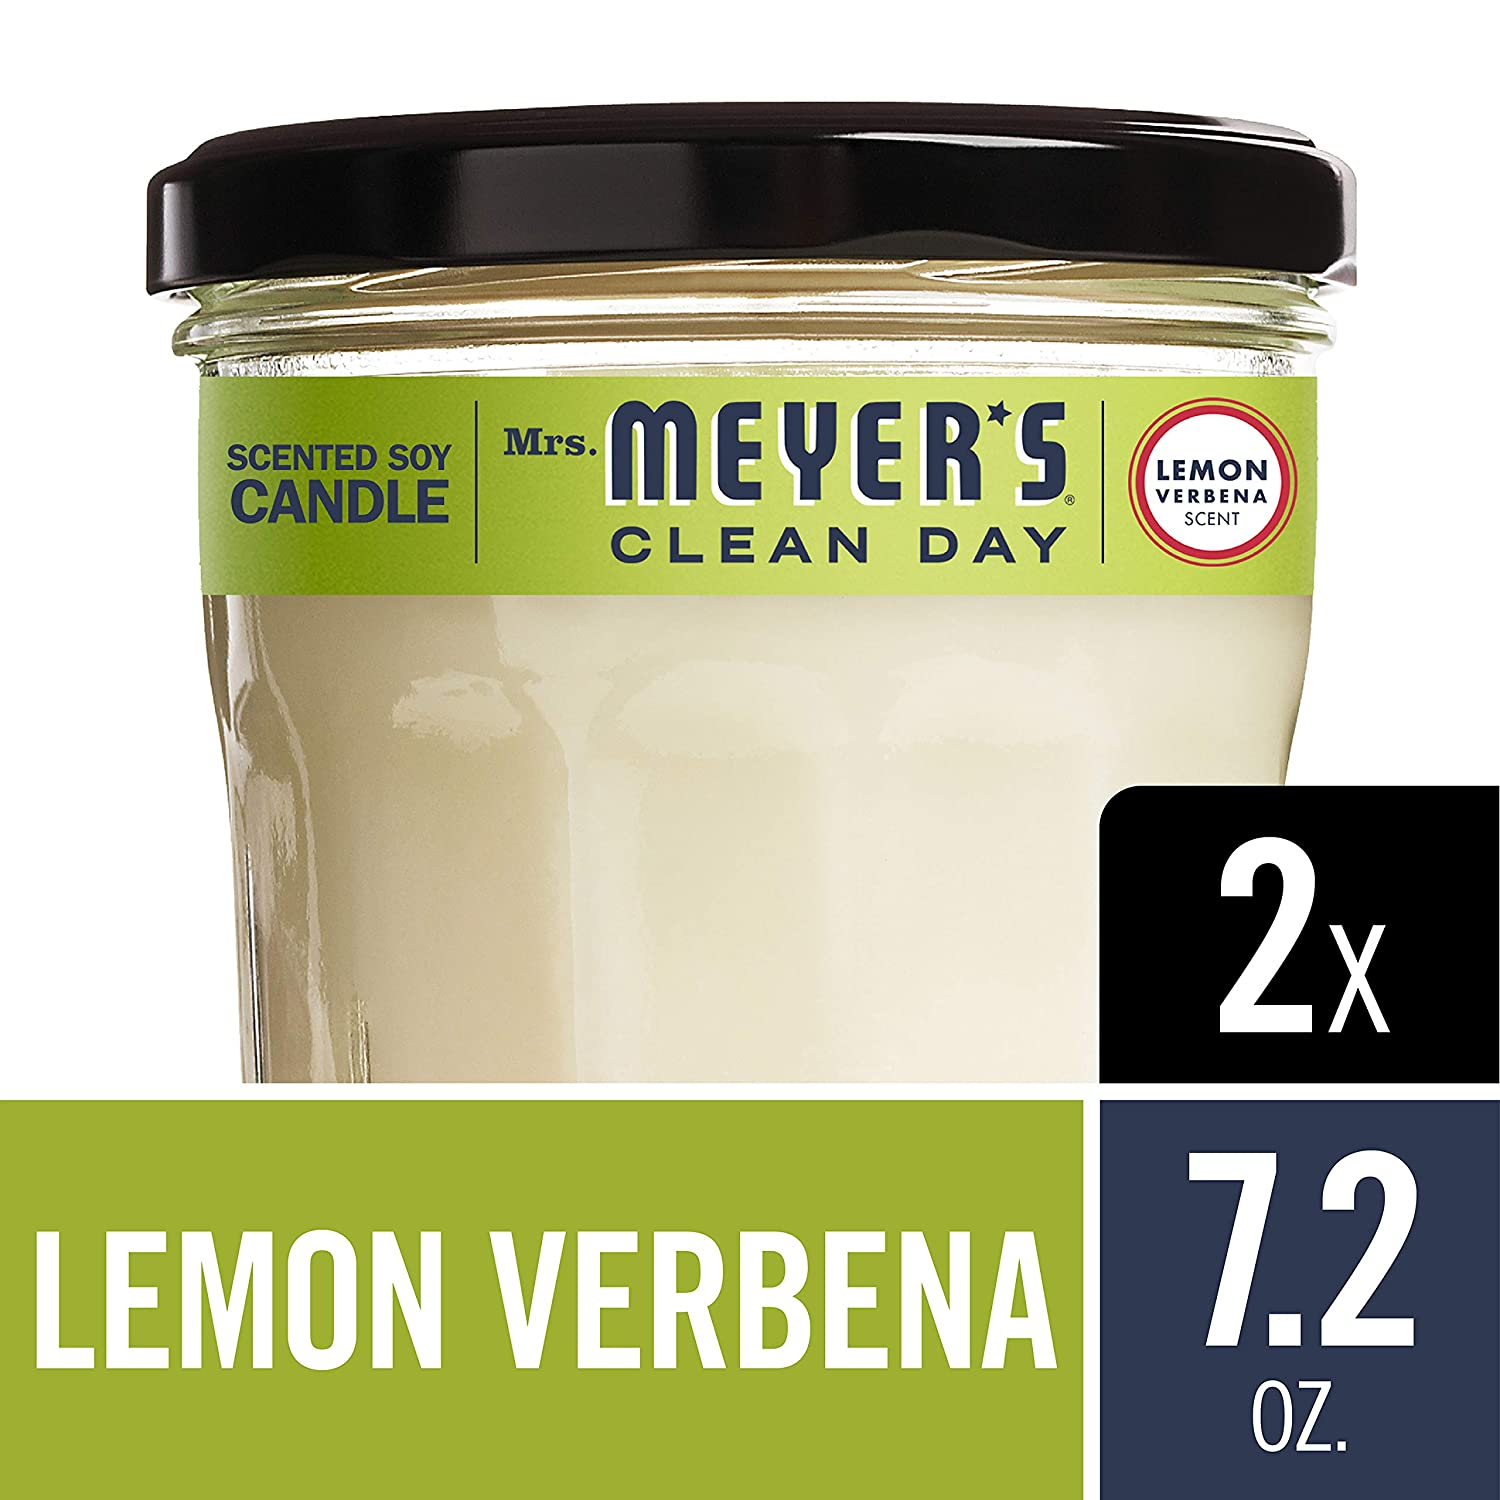 MRS MEYERS Soy Candle Large, Lemon Verbena, 7.2 Ounce (Pack of 2) Mrs. Meyer's Merged H&PC-71532